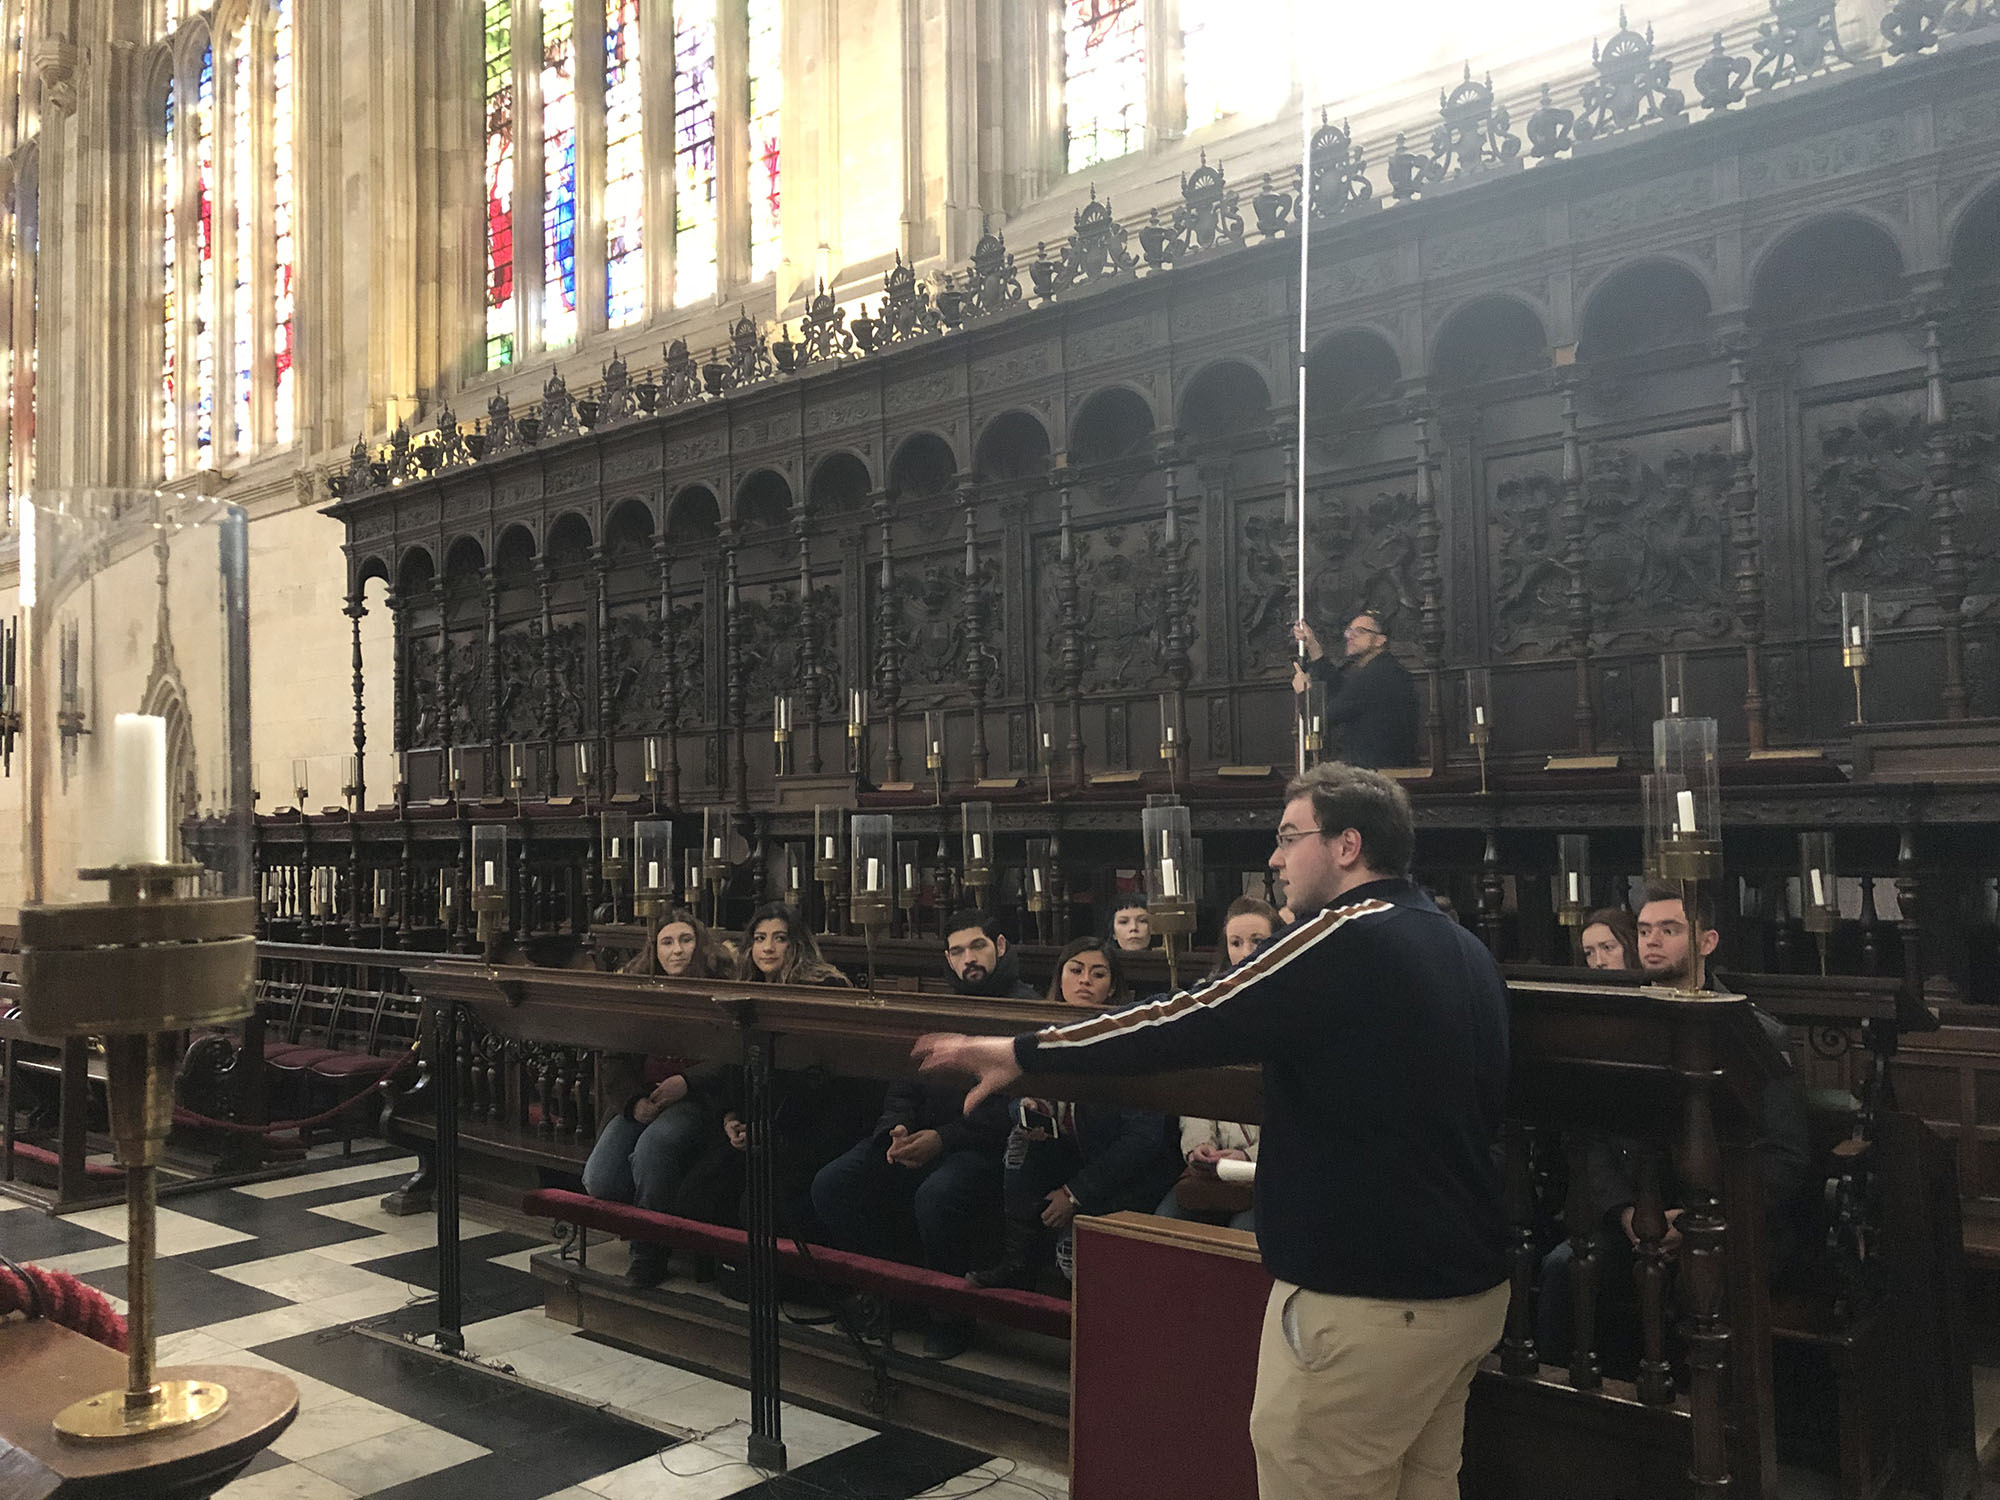 Students seated in the choir stalls at King's College Cambridge to listen about the choir at the Chapel.